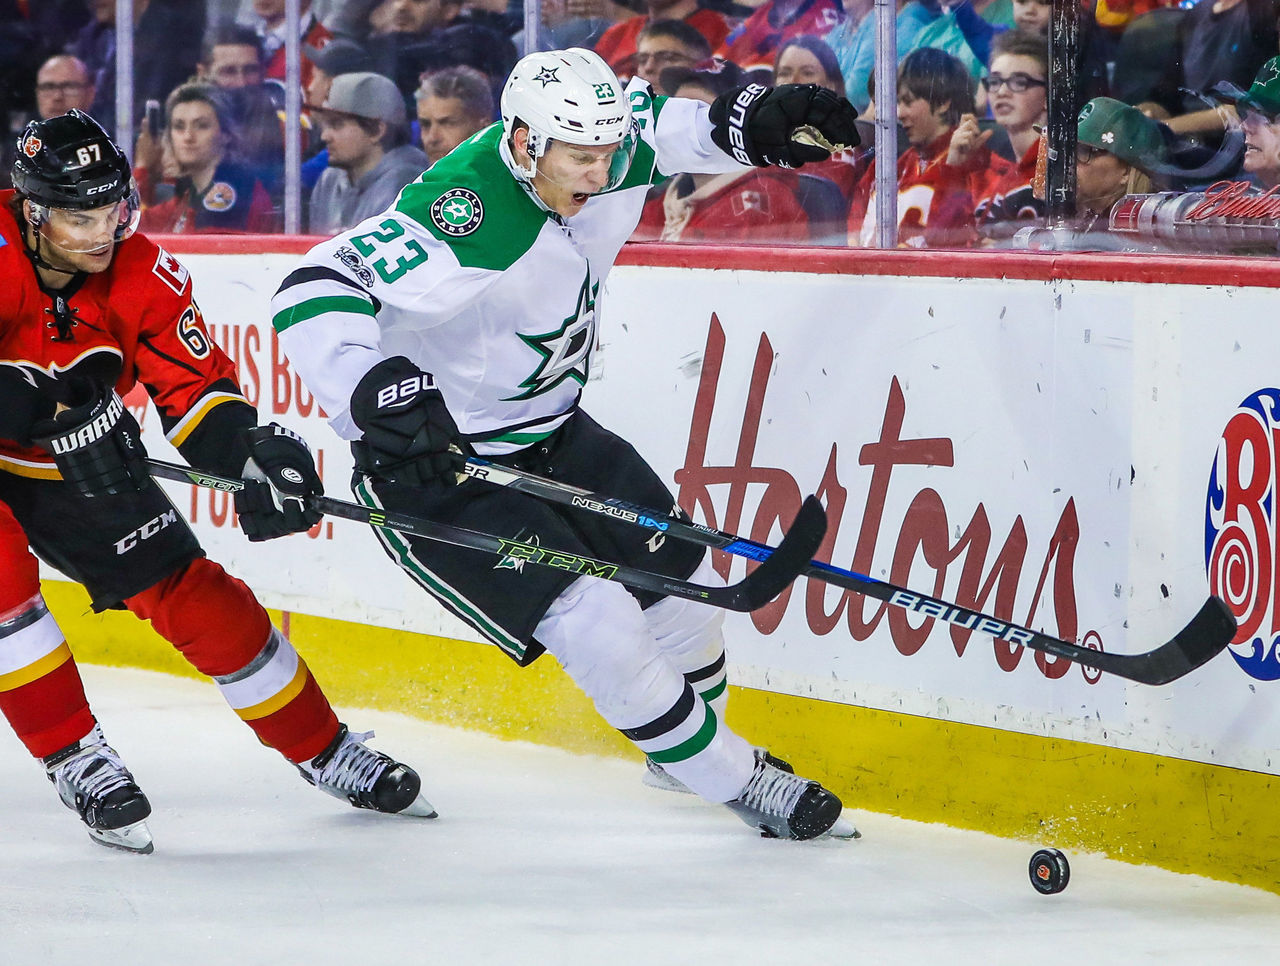 Cropped 2017 03 18t035800z 598749793 nocid rtrmadp 3 nhl dallas stars at calgary flames